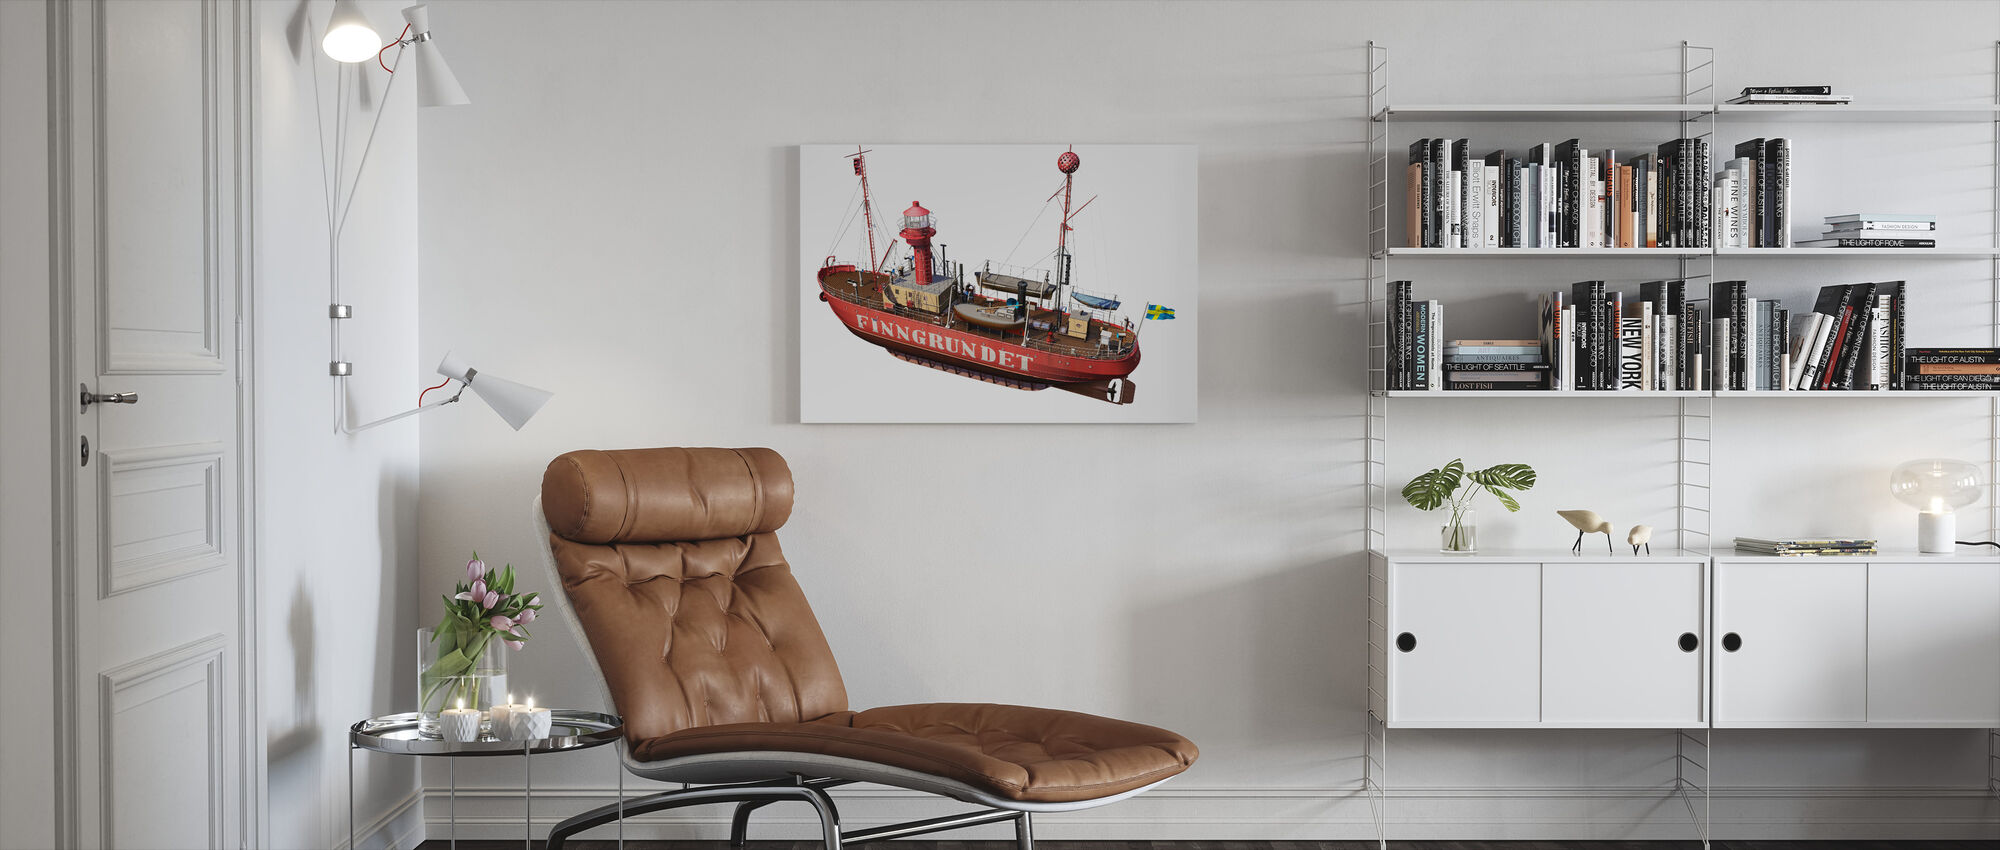 The lighthouse Finngrunget - Canvas print - Living Room